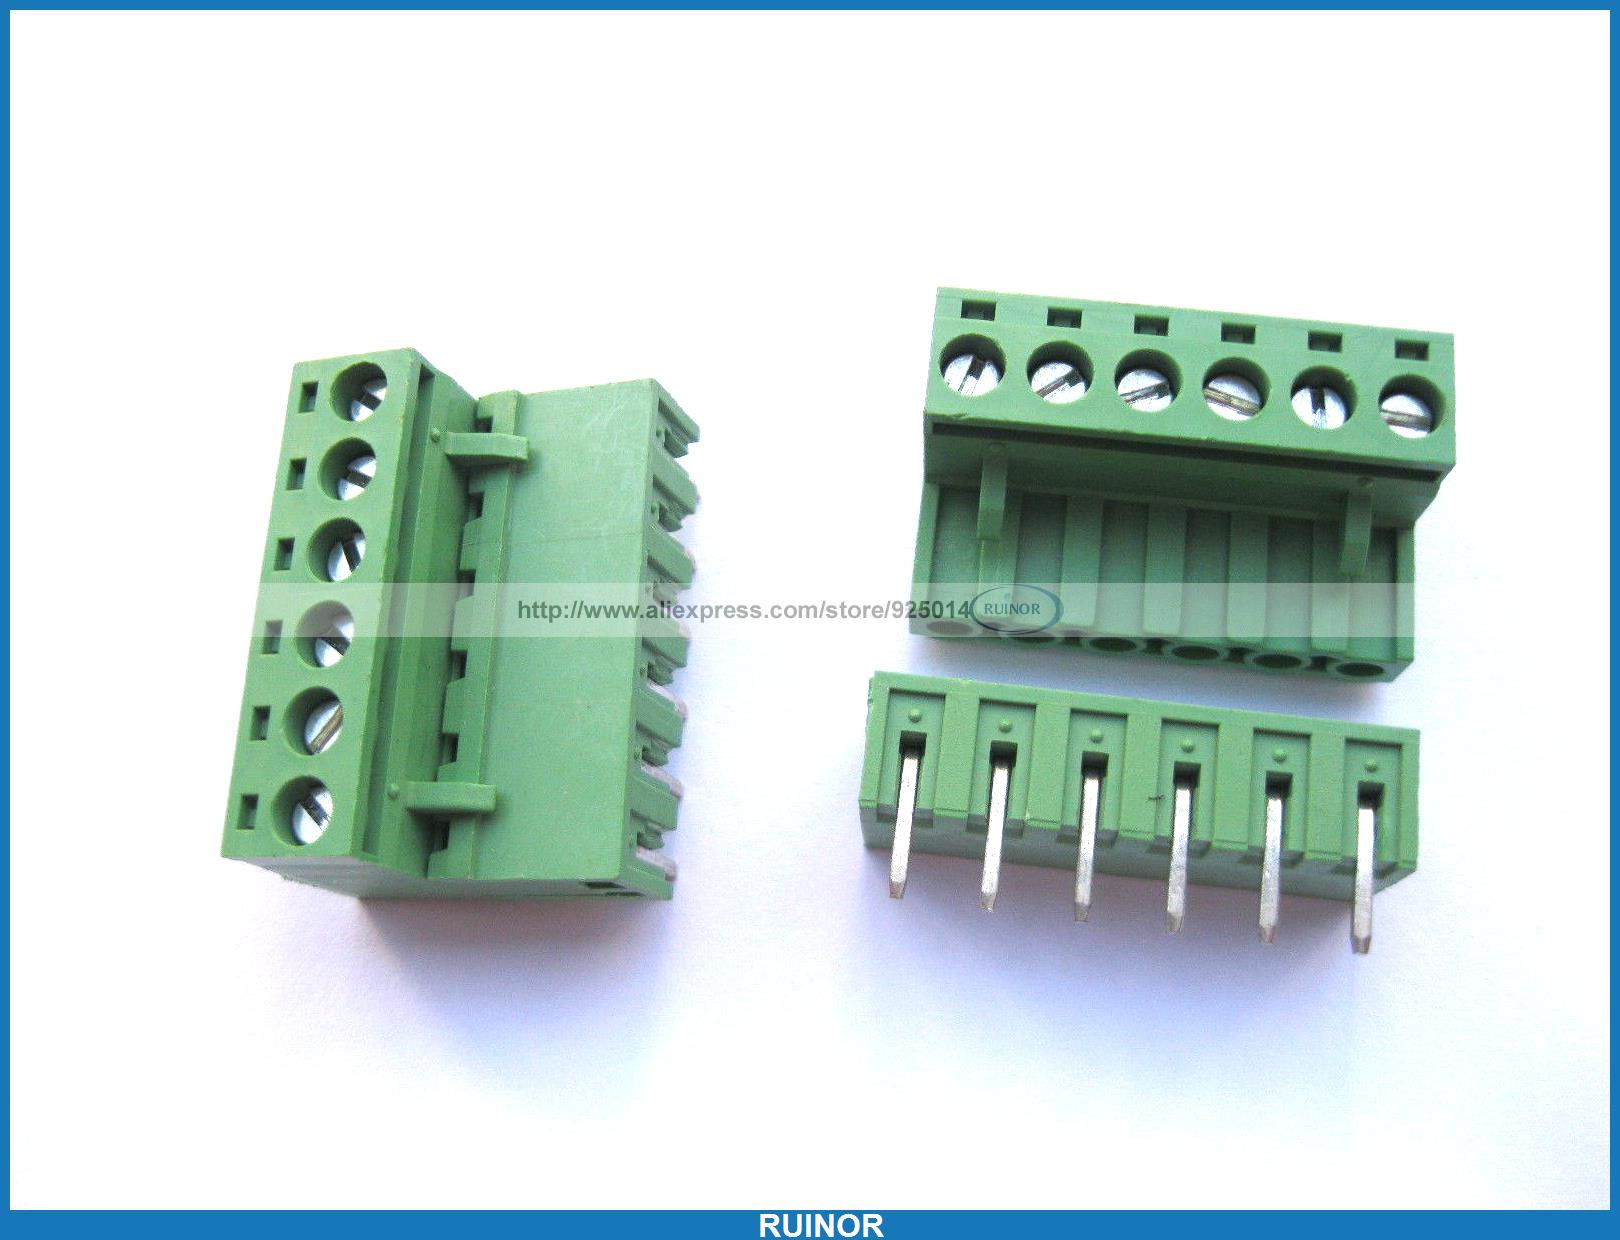 50 Pcs 5 08mm Angle 6 Pin Screw Terminal Block Connector Pluggable Type Green fitness breathable sportswear women t shirt sport suit yoga top quick dry running shirt gym clothes sport shirt jacket p189